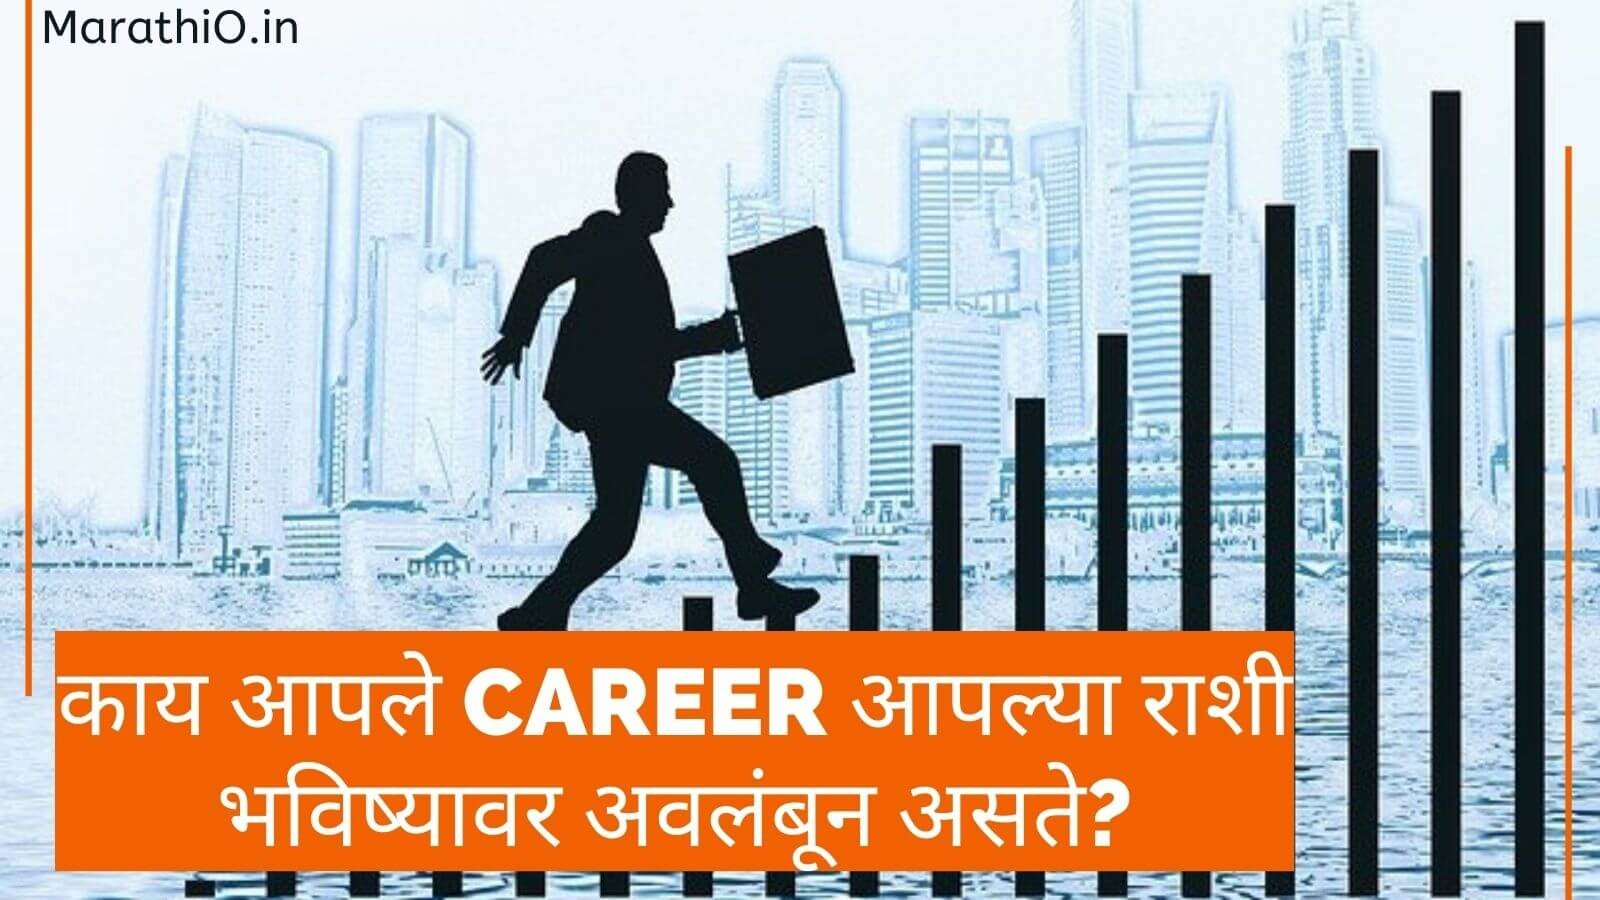 Human Career depends on zodiac sign in marathi